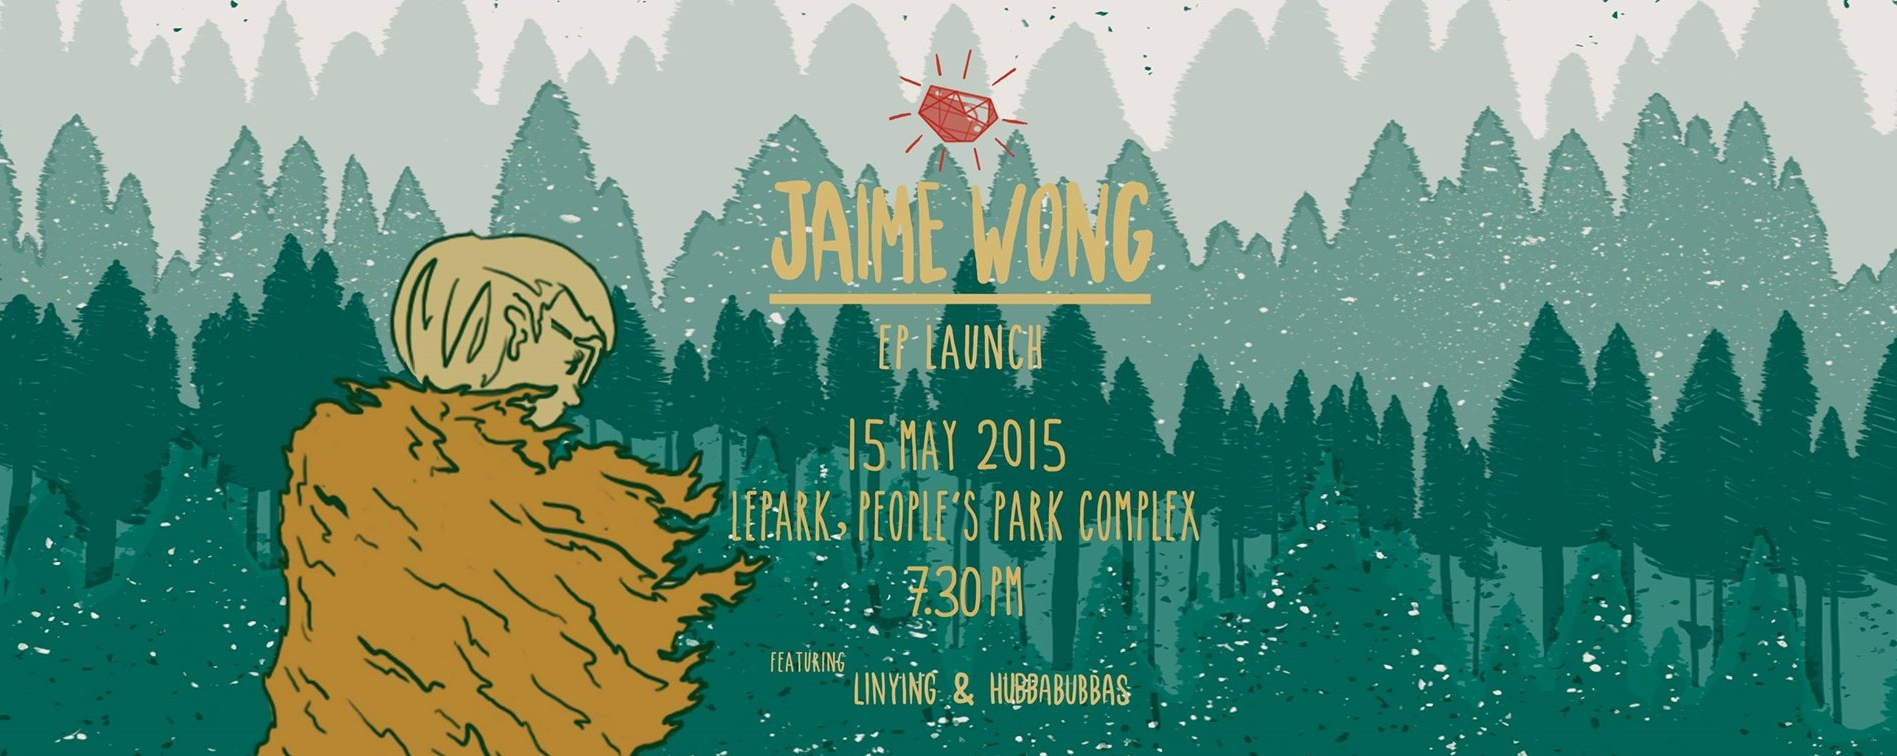 Jaime Wong Debut EP Launch